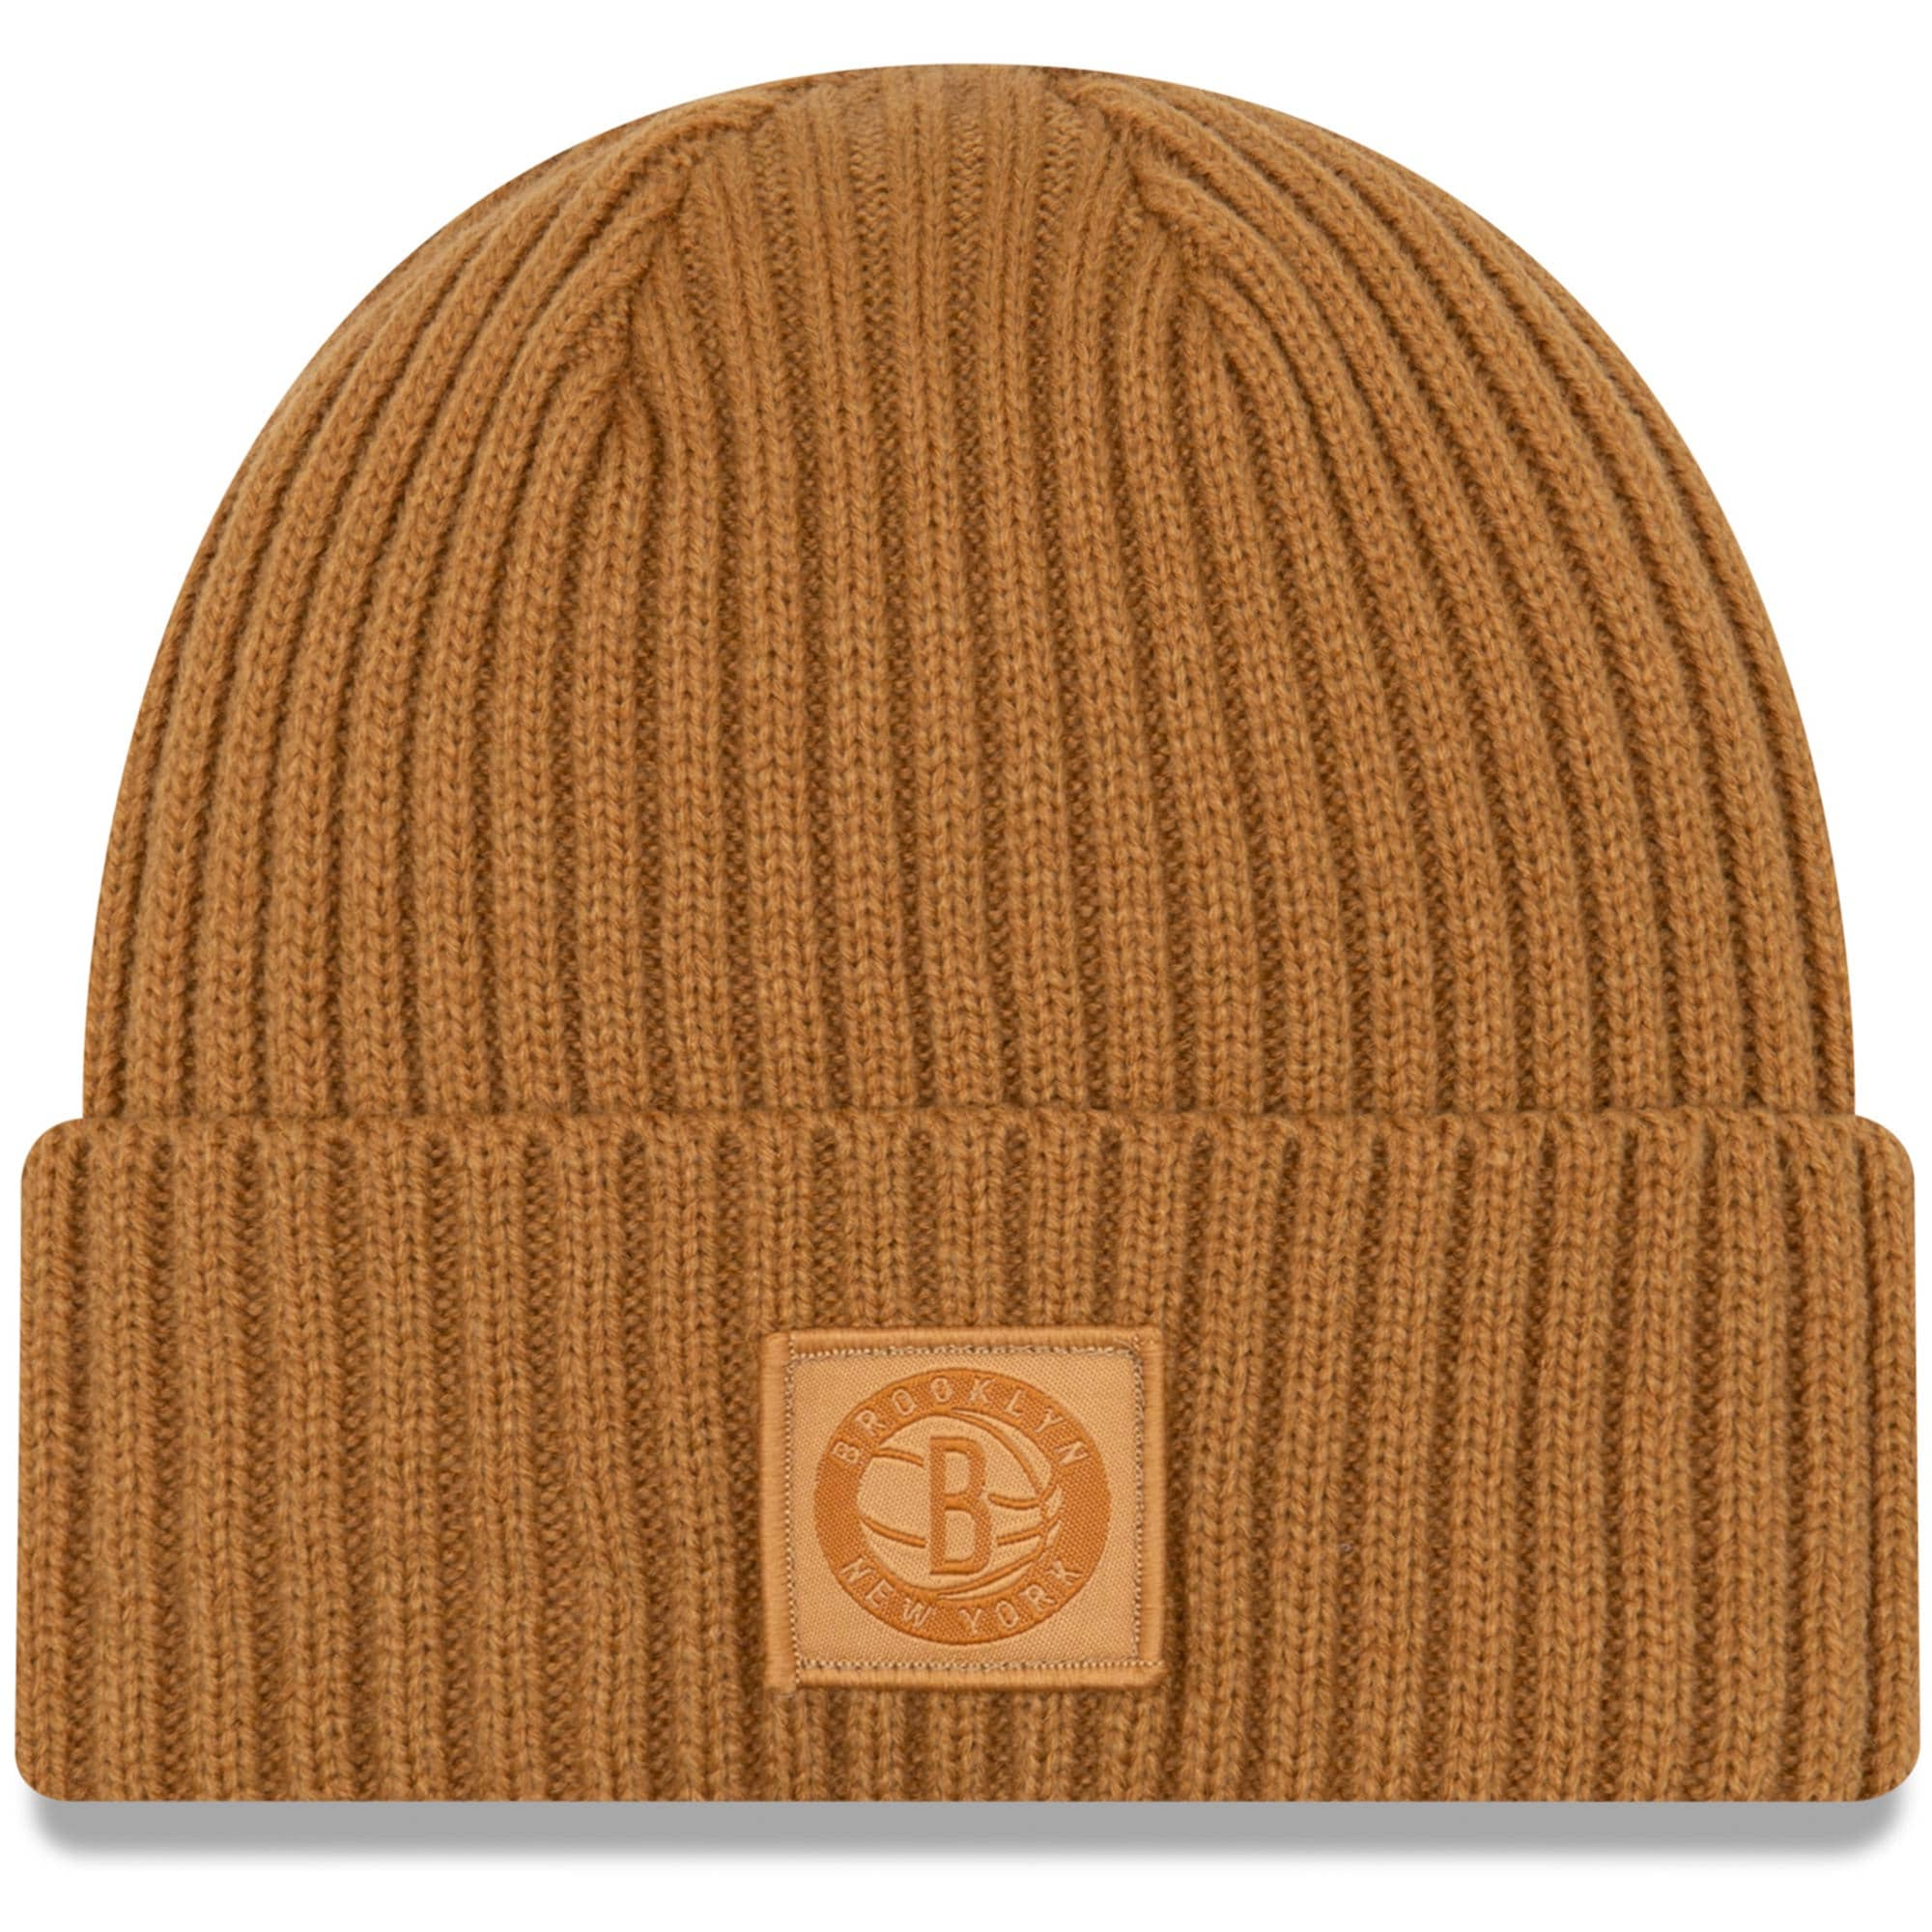 Brooklyn Nets New Era Label Cuffed Knit Hat - Tan